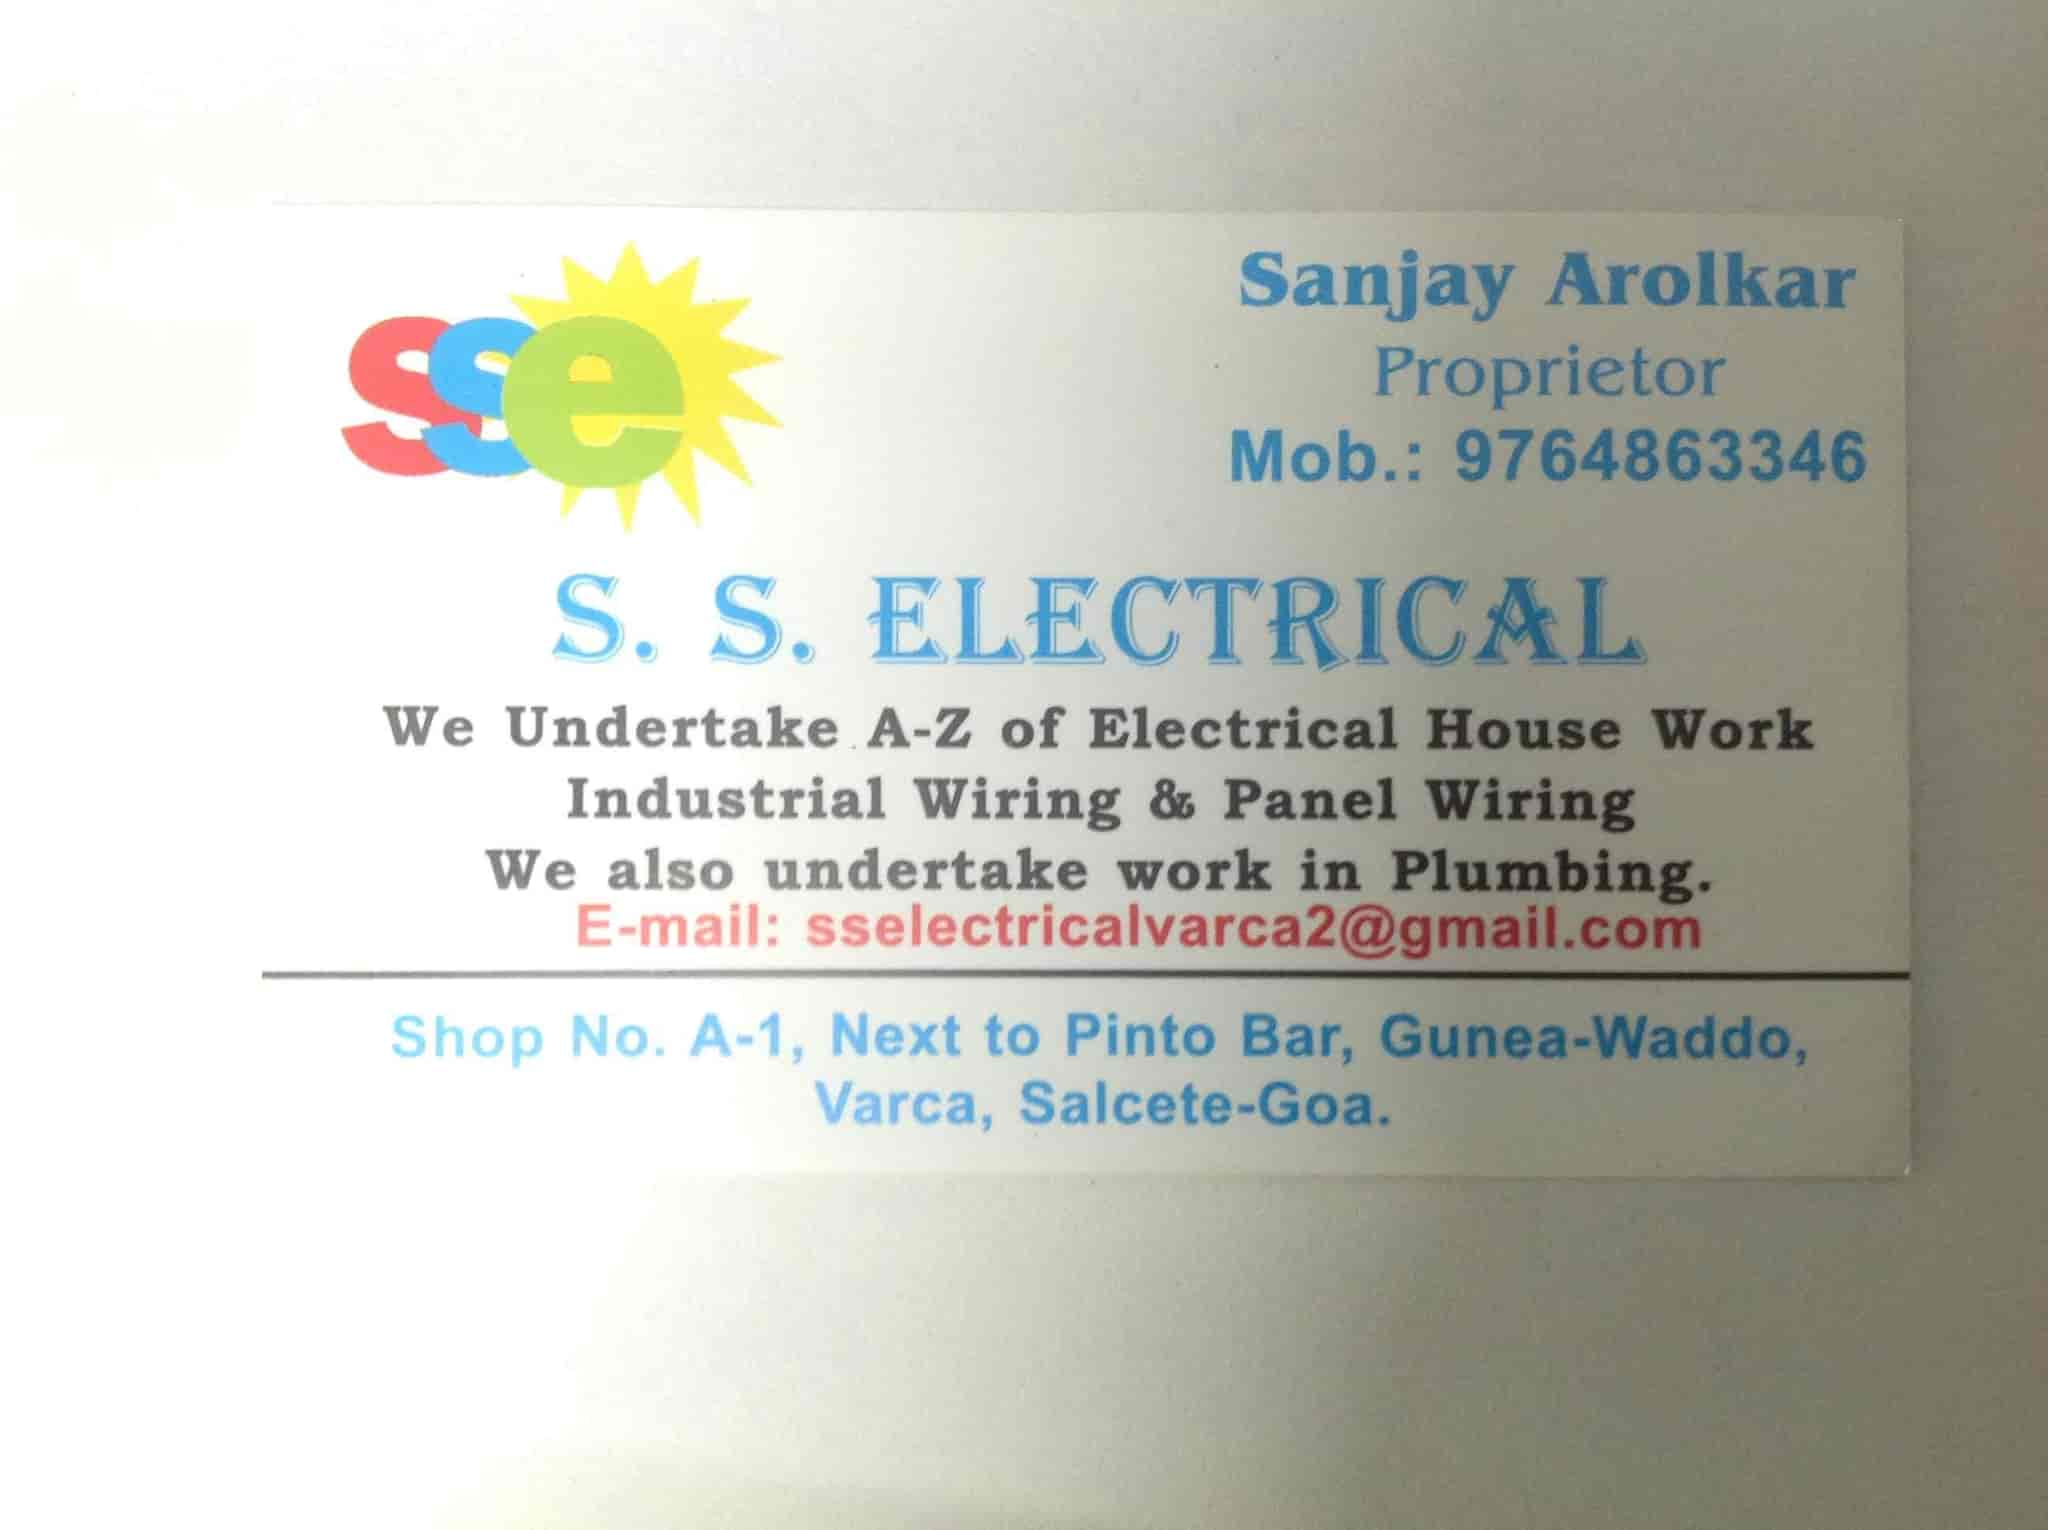 Ss Electricals Varca Electricians In Goa Justdial